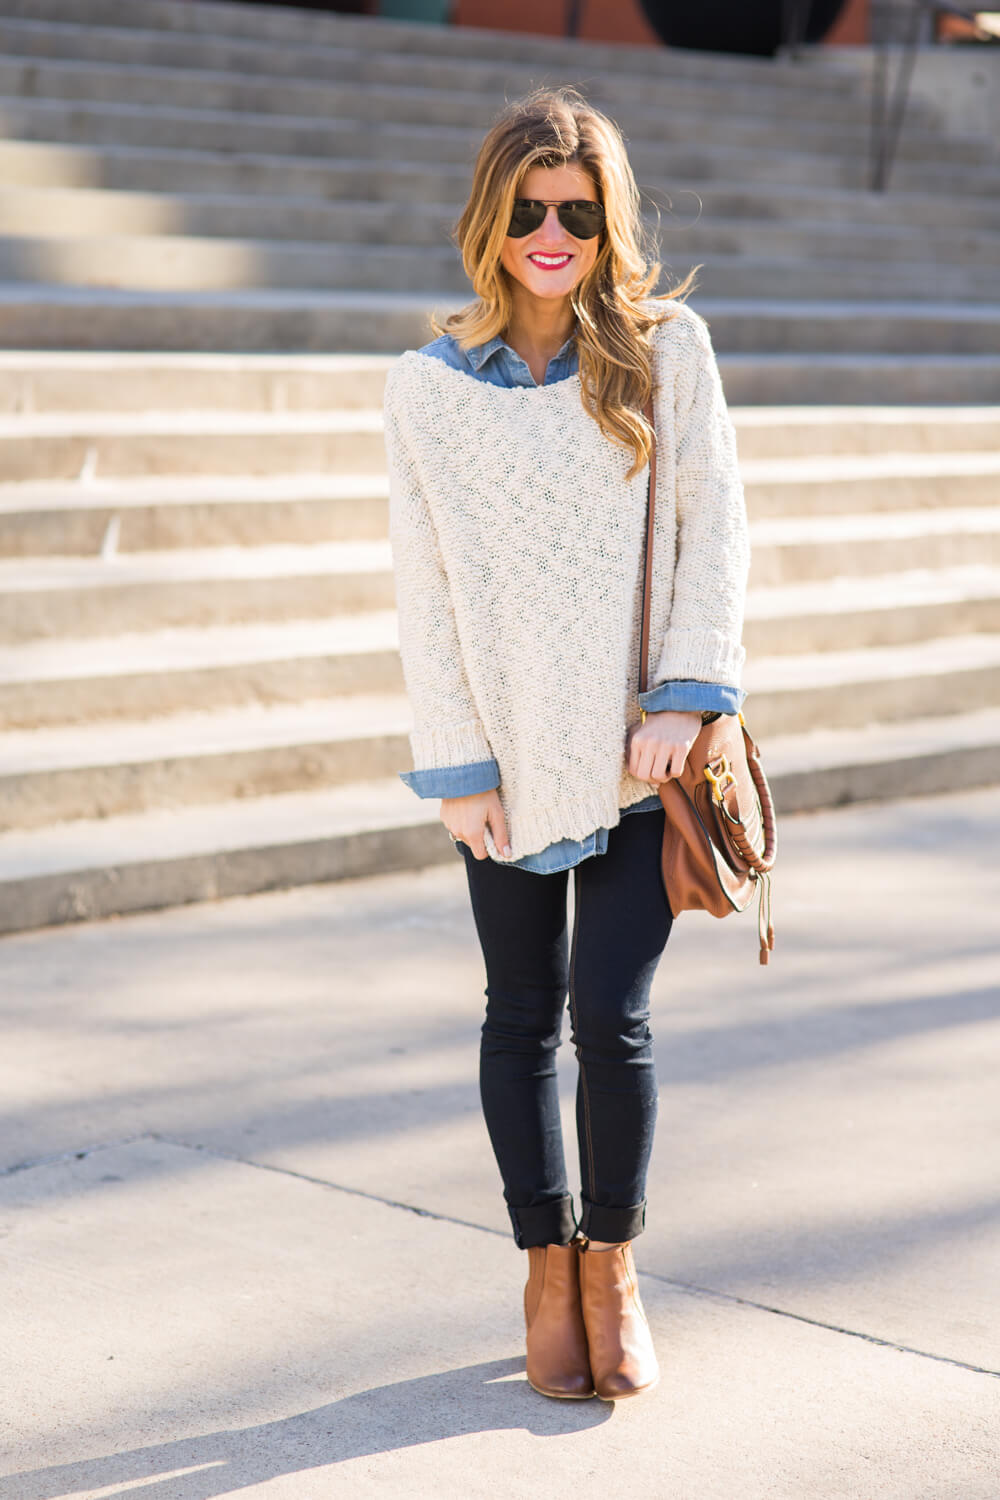 white sweater + chambray shirt + skinny jeans + booties + crossbody bag